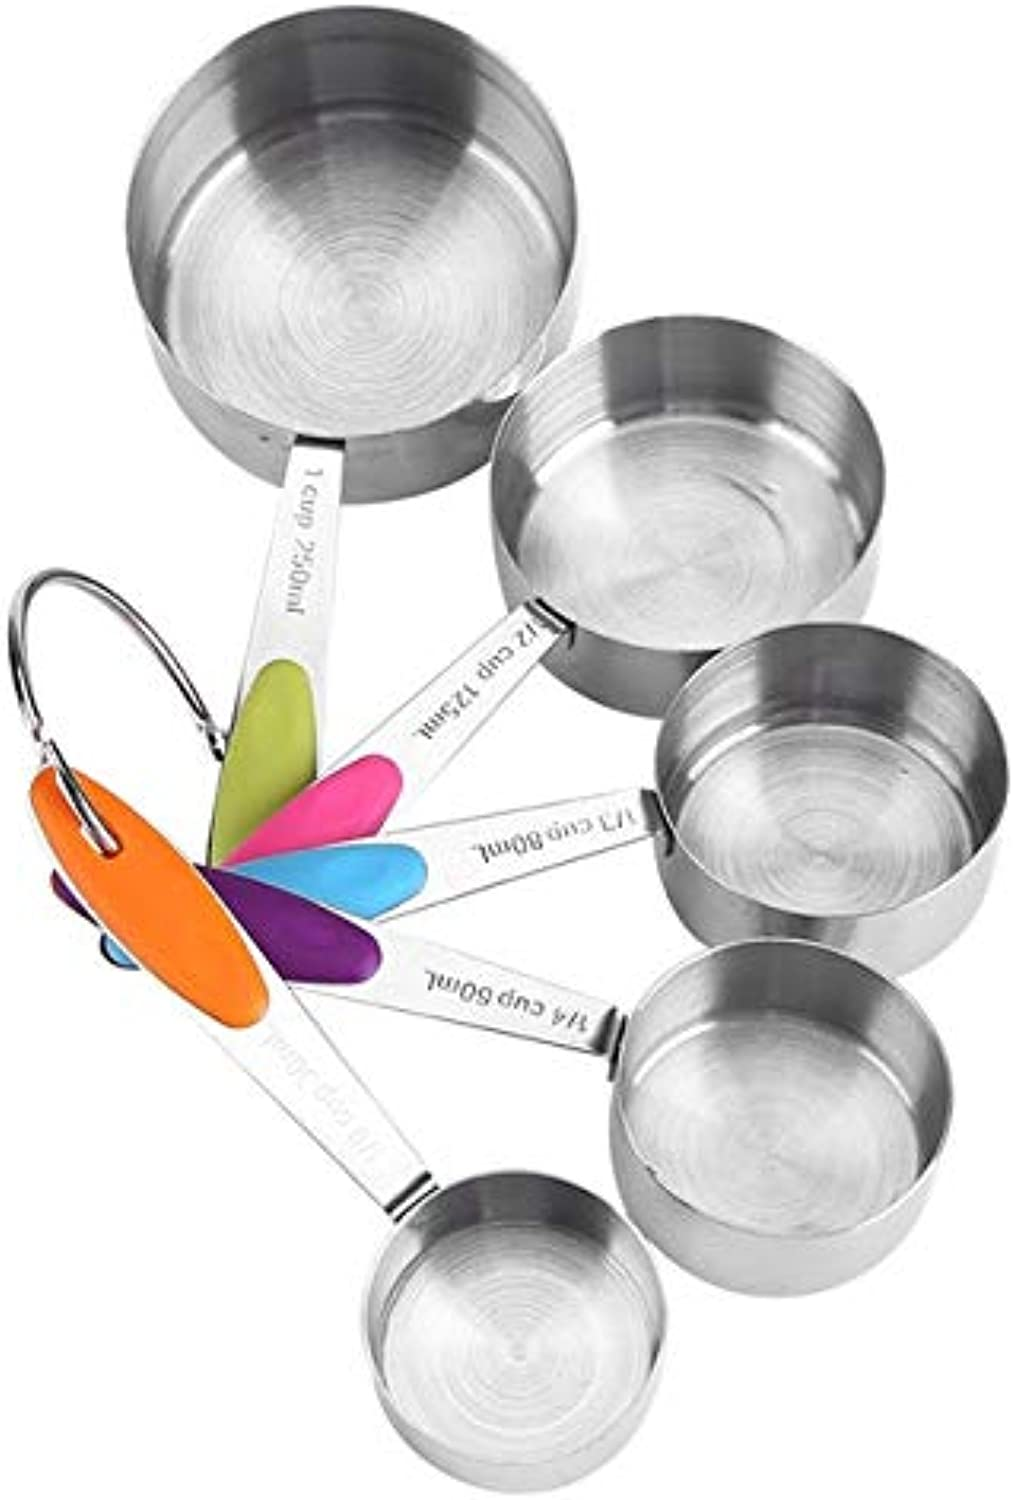 Stainless Steel Measuring Cup Kitchen Measuring Spoons Scoop for Baking Sugar Coffee Measuring Tools Sets   5 Pcs